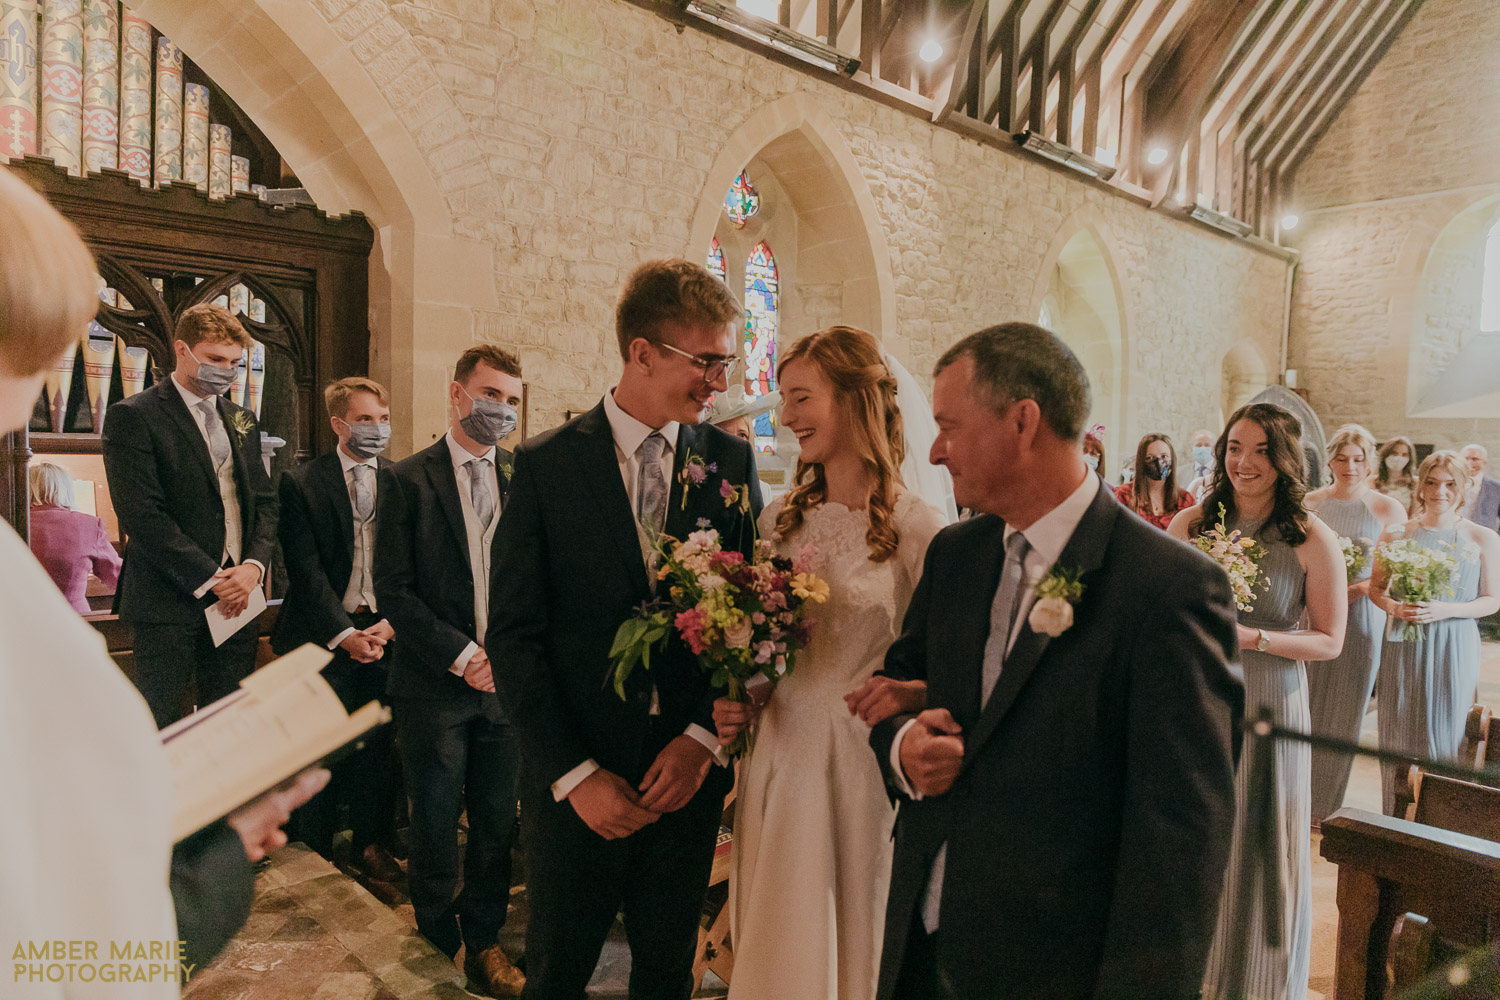 Documentary wedding photo of bride and groom during church ceremony